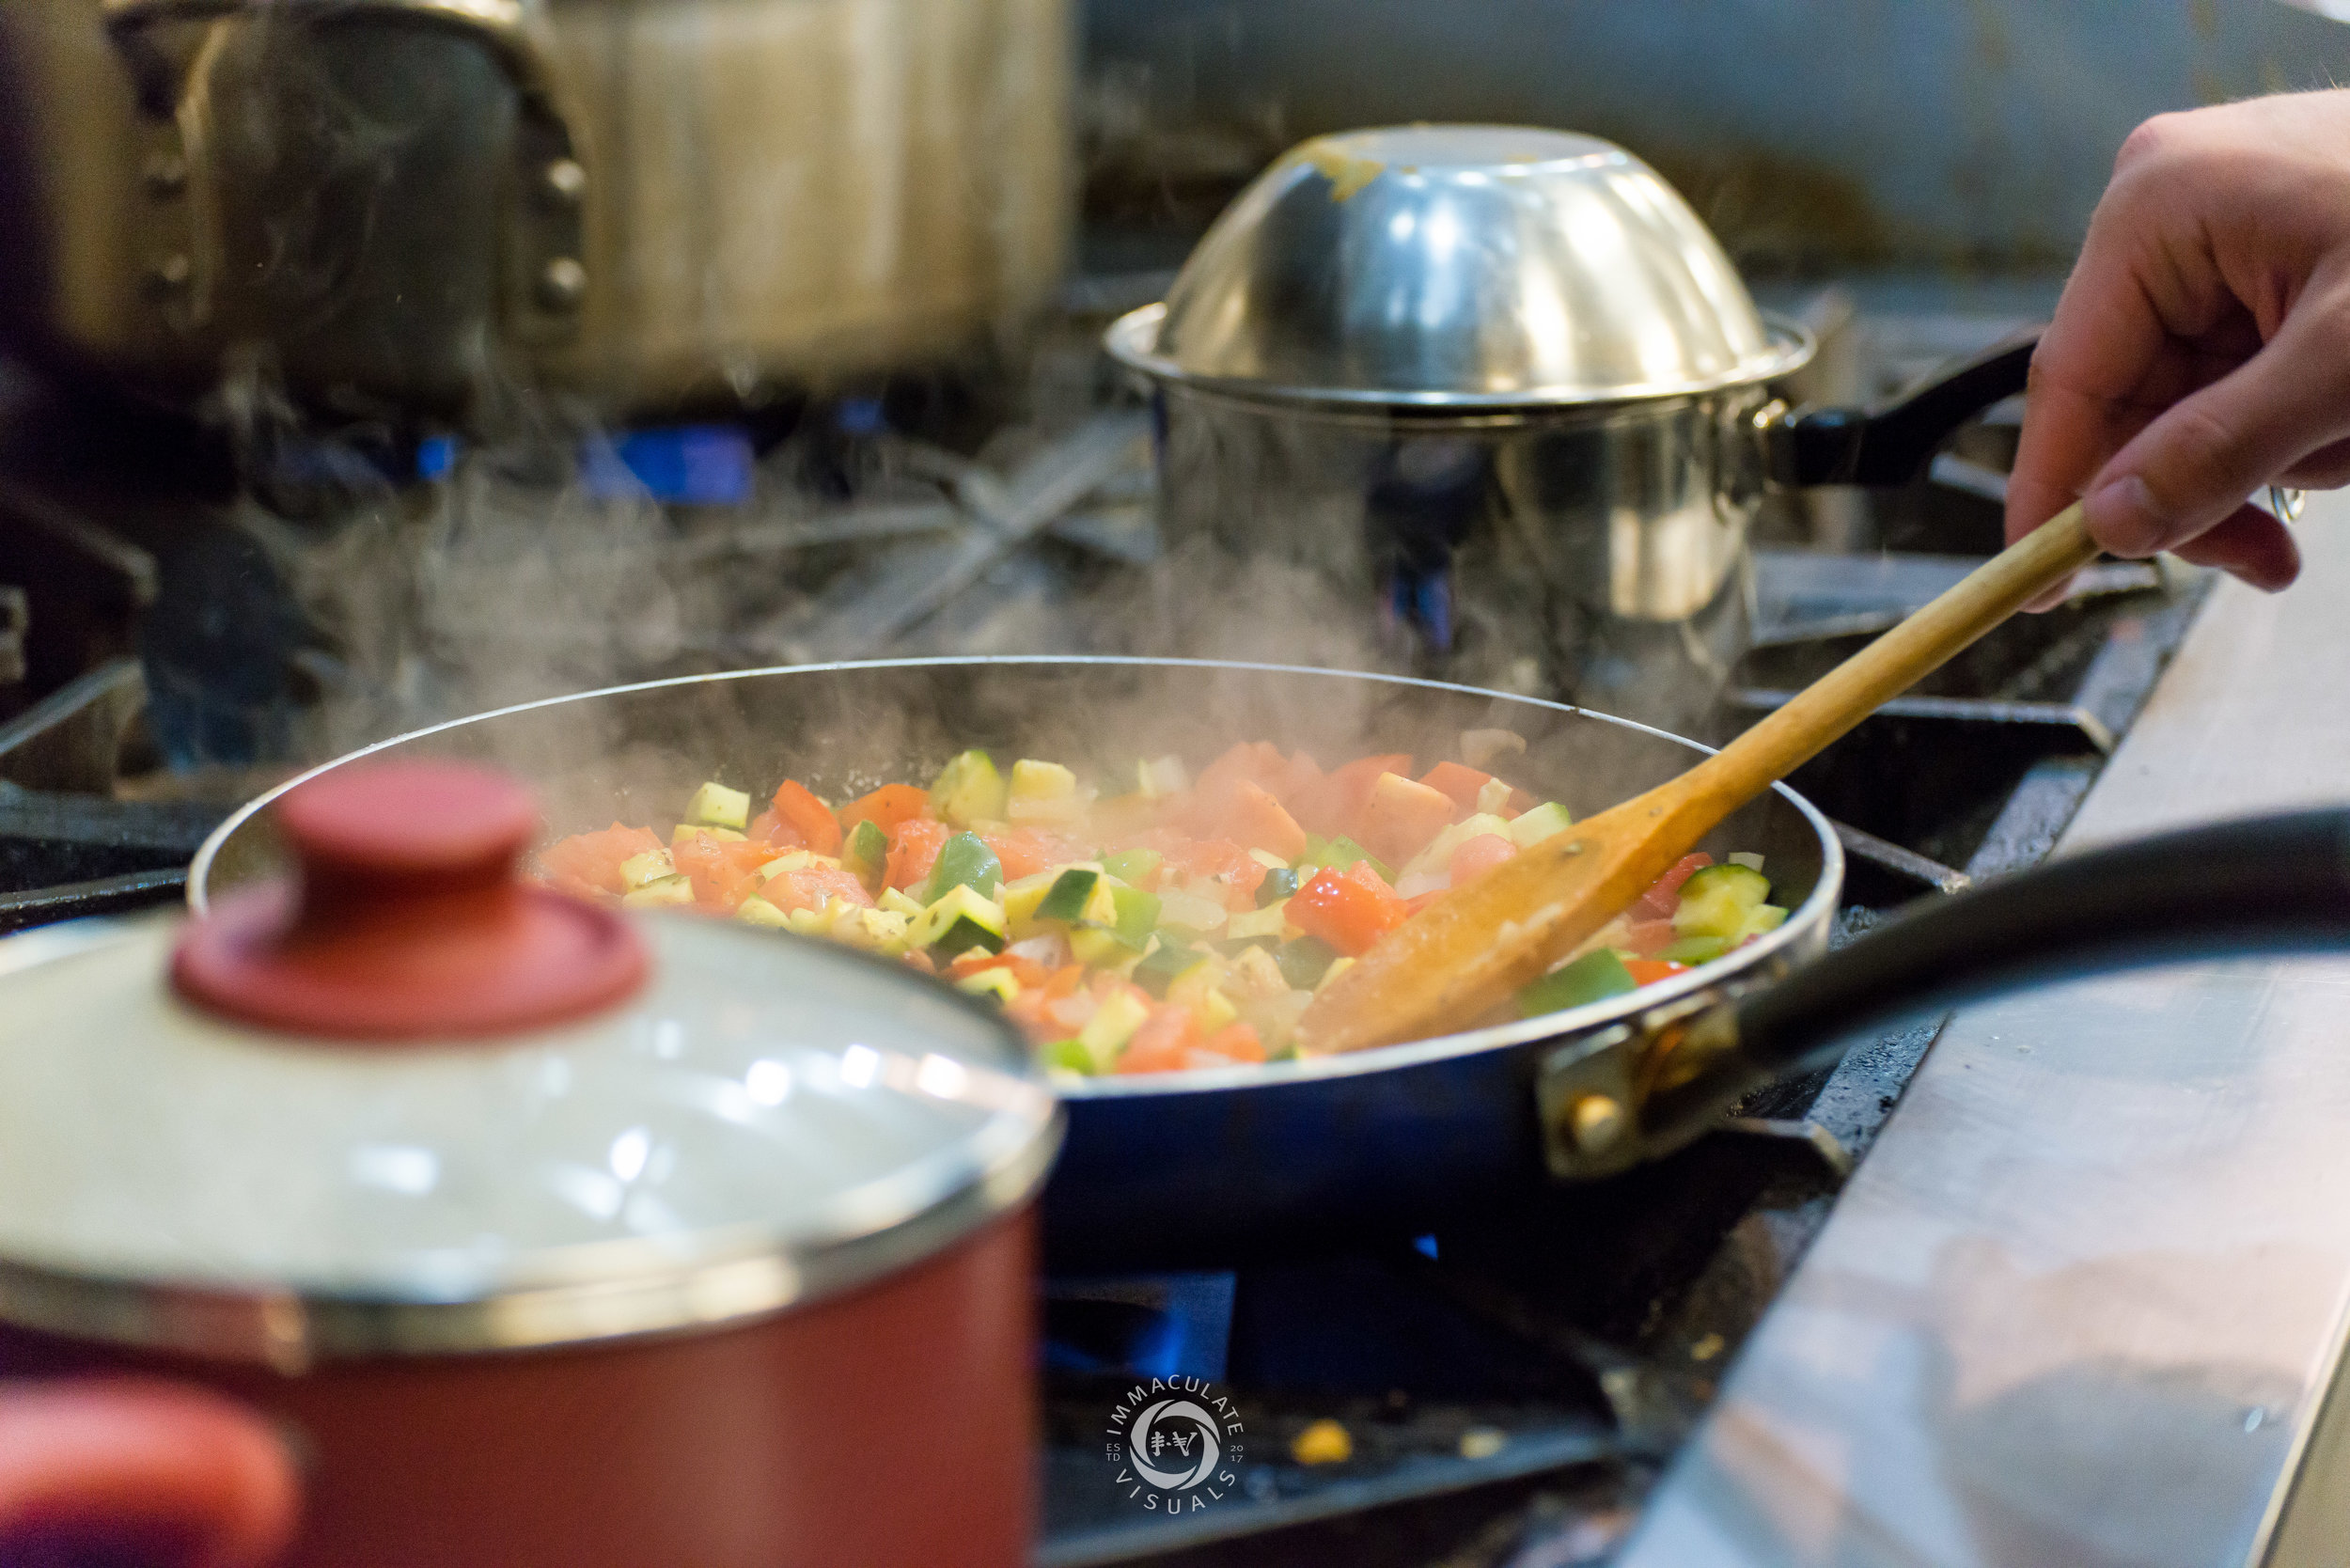 Events - CookOff-7543.jpg